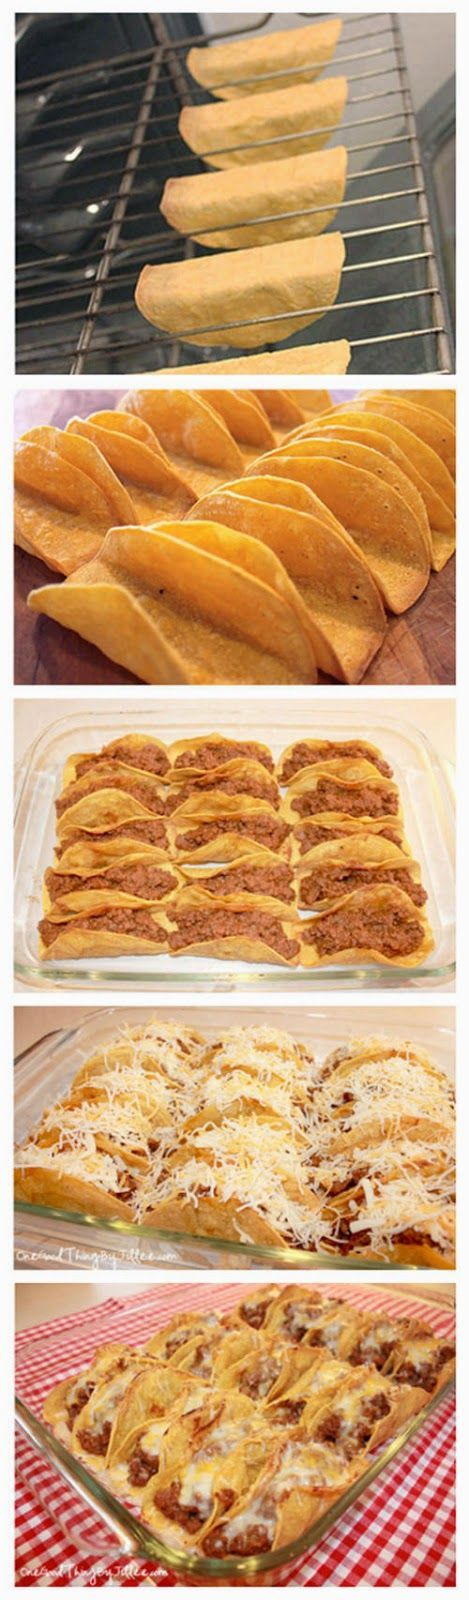 HOW TO MAKE YOUR OWN BAKED TACO SHELLS ~ toprecipeblog #mexicanfoodrecipes